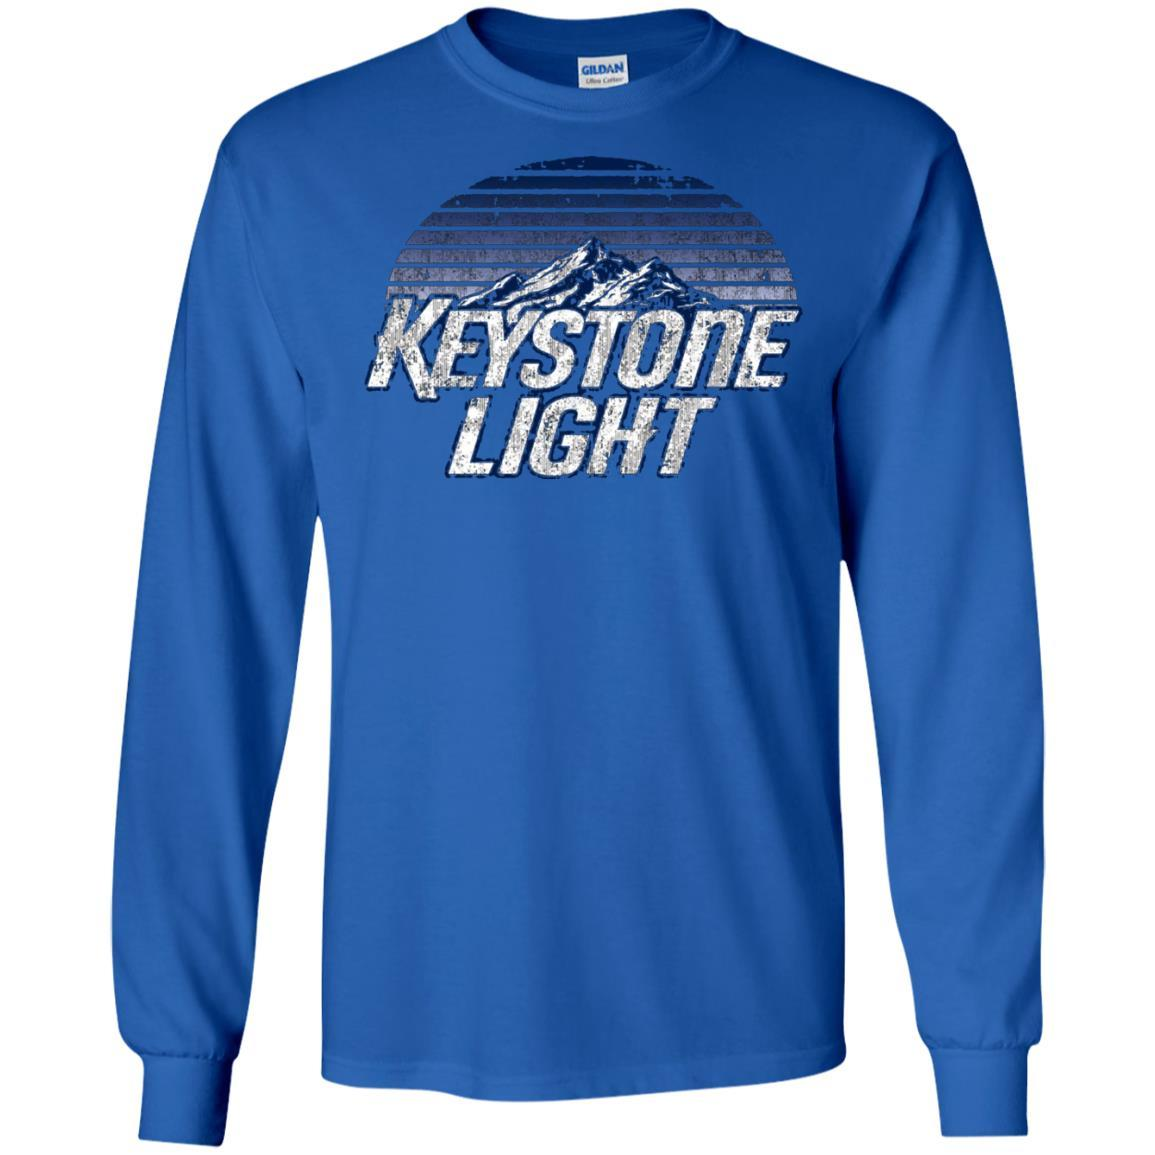 Keystone Light Beer Classic Look - LS T-Shirt Style / Color / Size